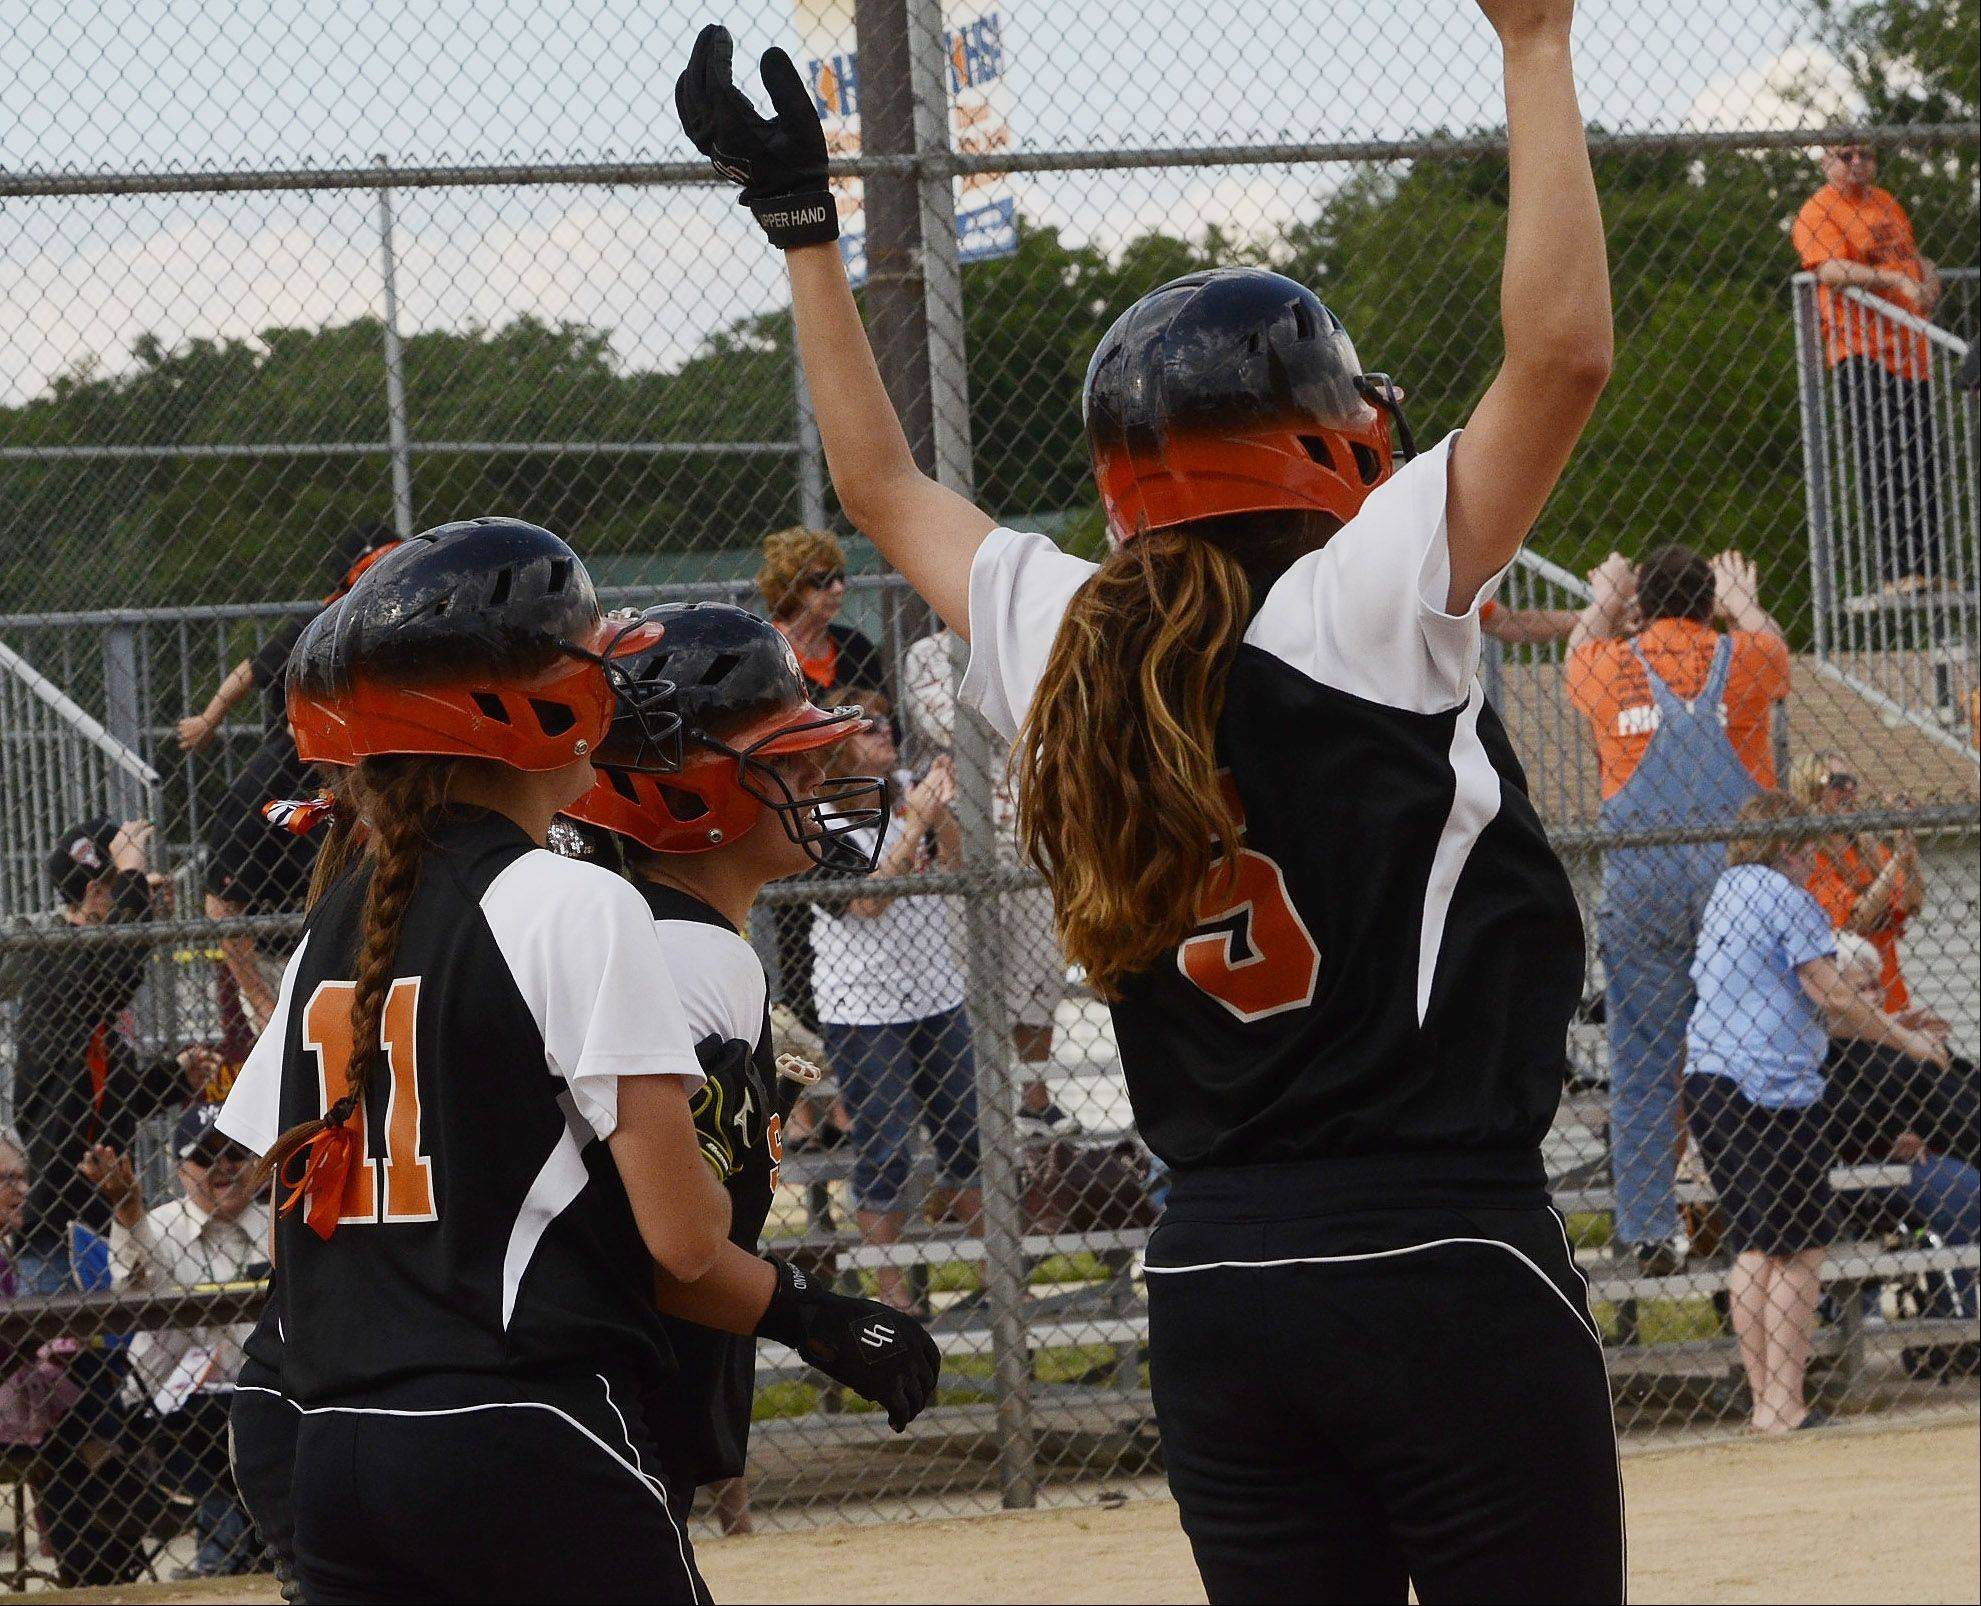 Tess Hupe, left and Lexi Perez of St. Charles East jump for joy at home plate after scoring the winning runs in the bottom of the 7th inning.